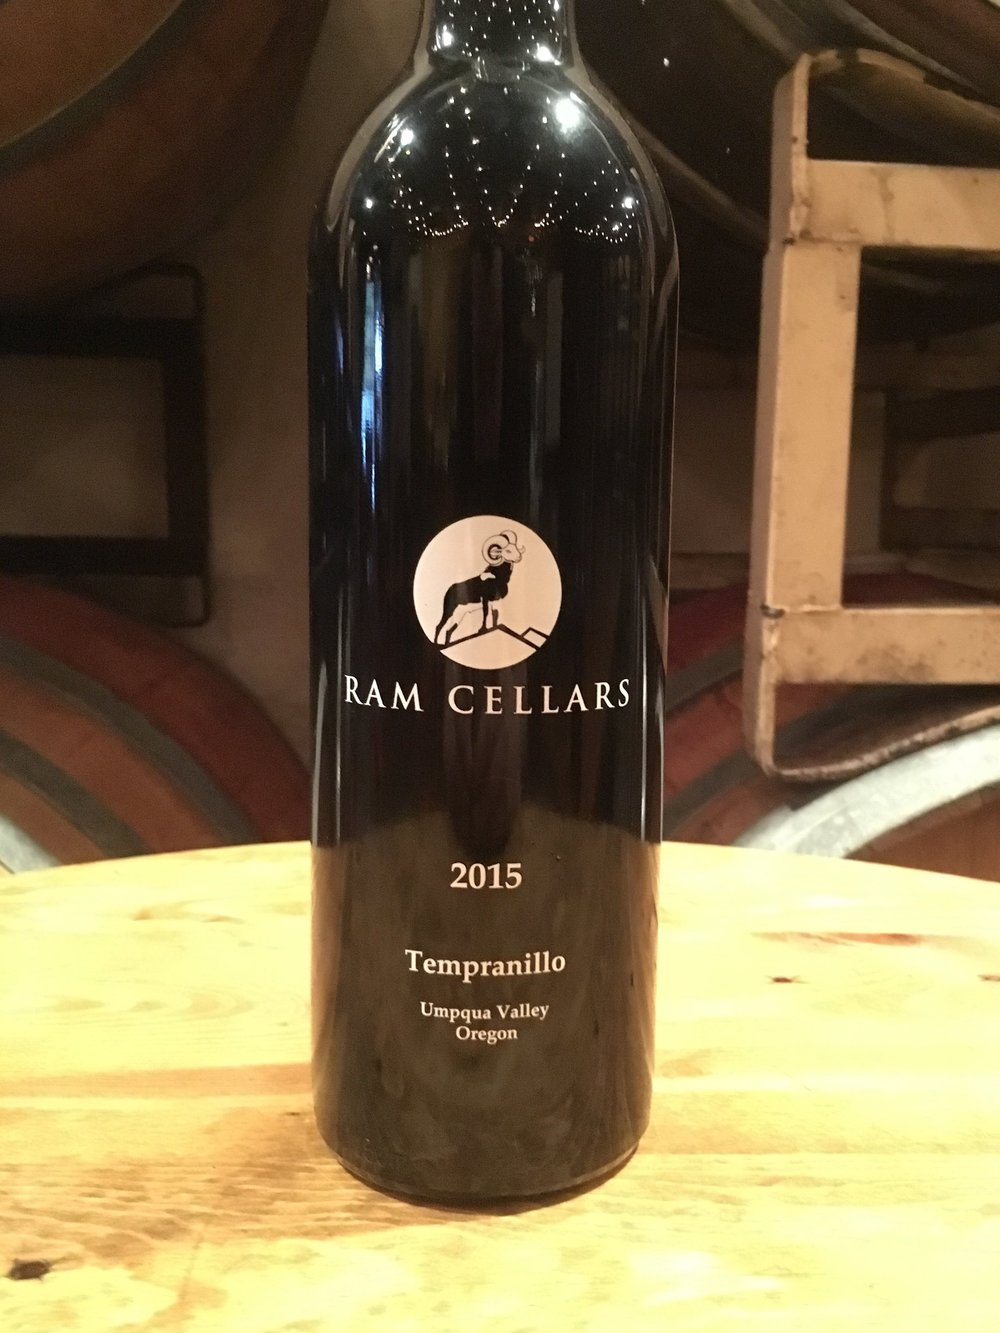 2015 Tempranillo$25 (SOLD OUT!)Our 2015 Tempranillo is balanced and smooth, with well integrated tannins juxtaposed against a dark and subtle blackberry fruit-forwardness. While it's tempting to drink it now, this wine has some serious aging potential. Pairs well with roasted duck, baked salmon, sauteed mushrooms, and of course, family and friends! - Delfino Vineyards, Umpqua Valley, Oregon, 65 cases produced